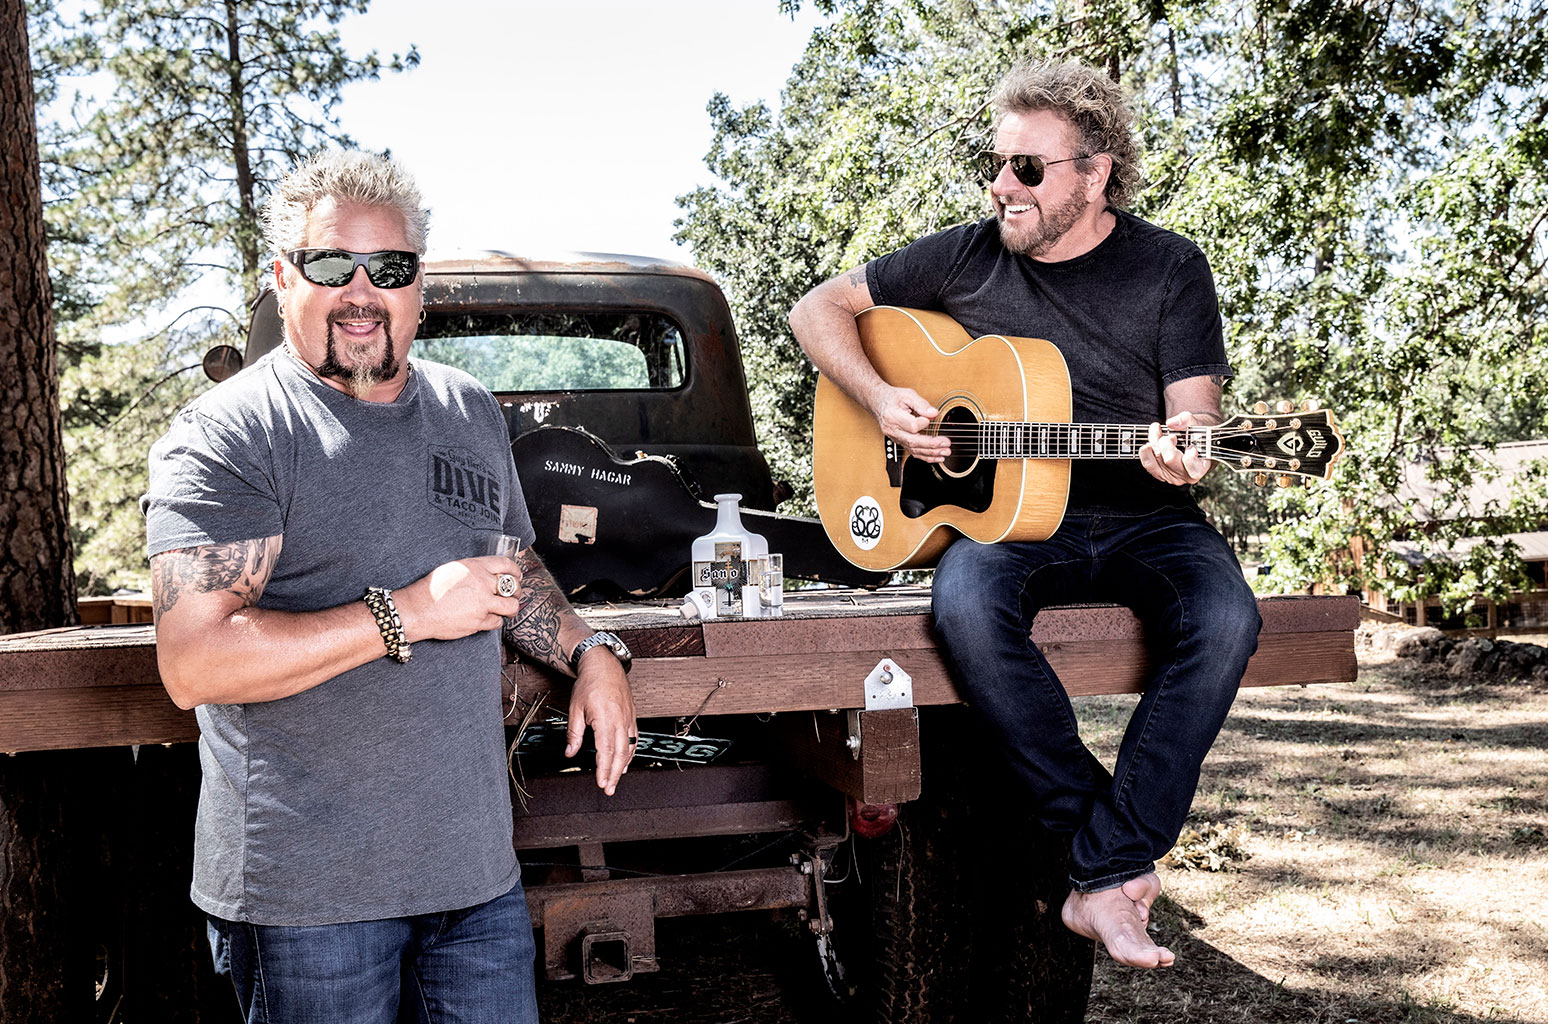 Guy Fieri & Sammy Hagar On Why They're 'attached At The Heart' photo